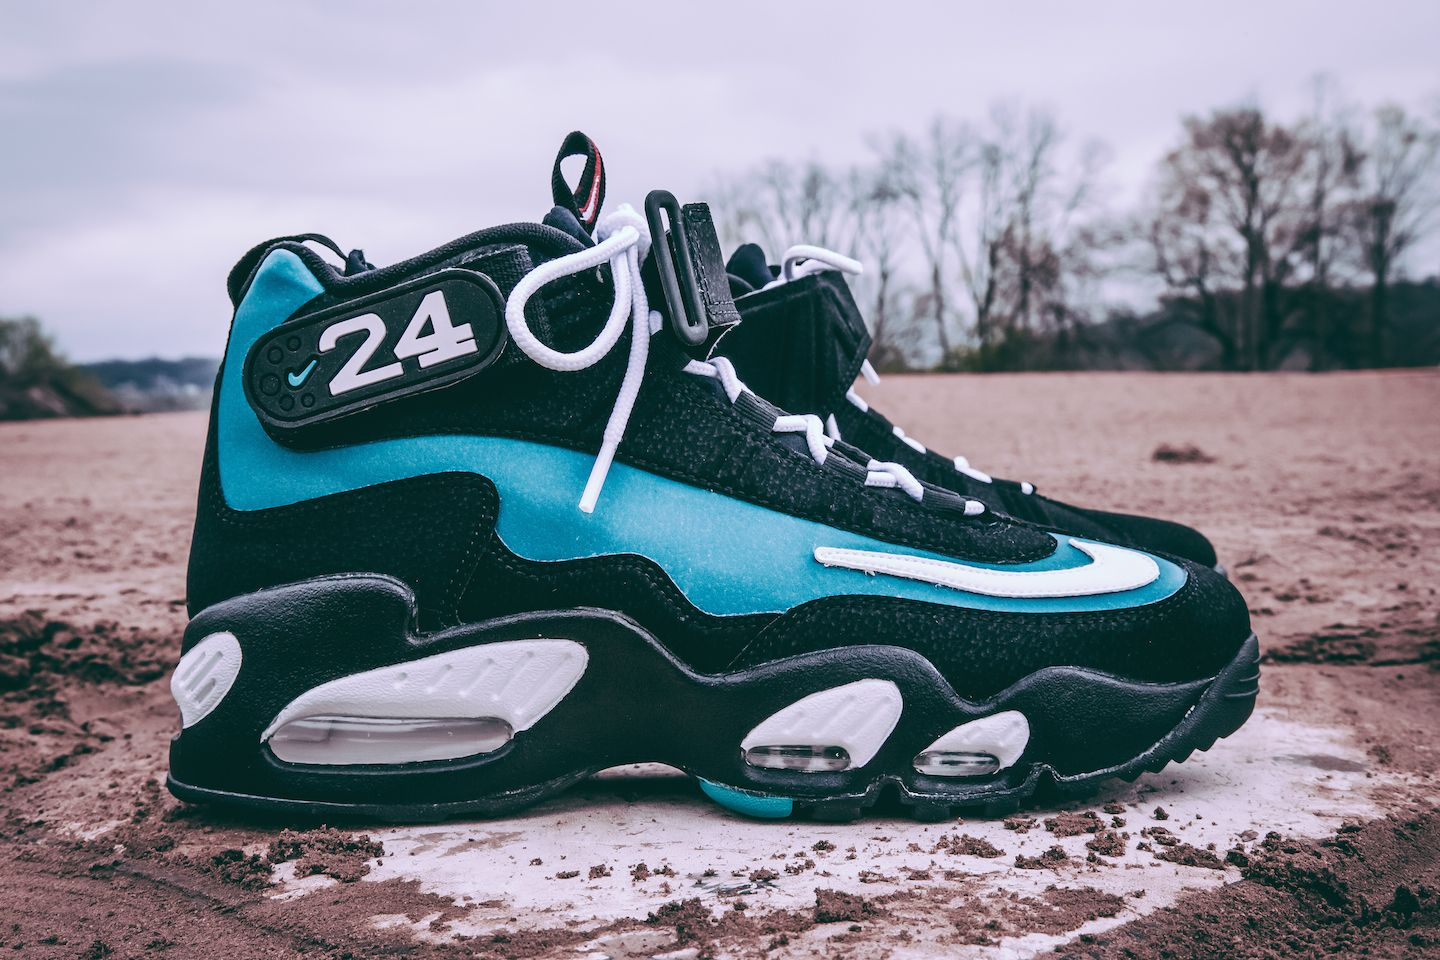 official photos 7b512 cee0c Nike Air Griffey Max 1 Freshwater